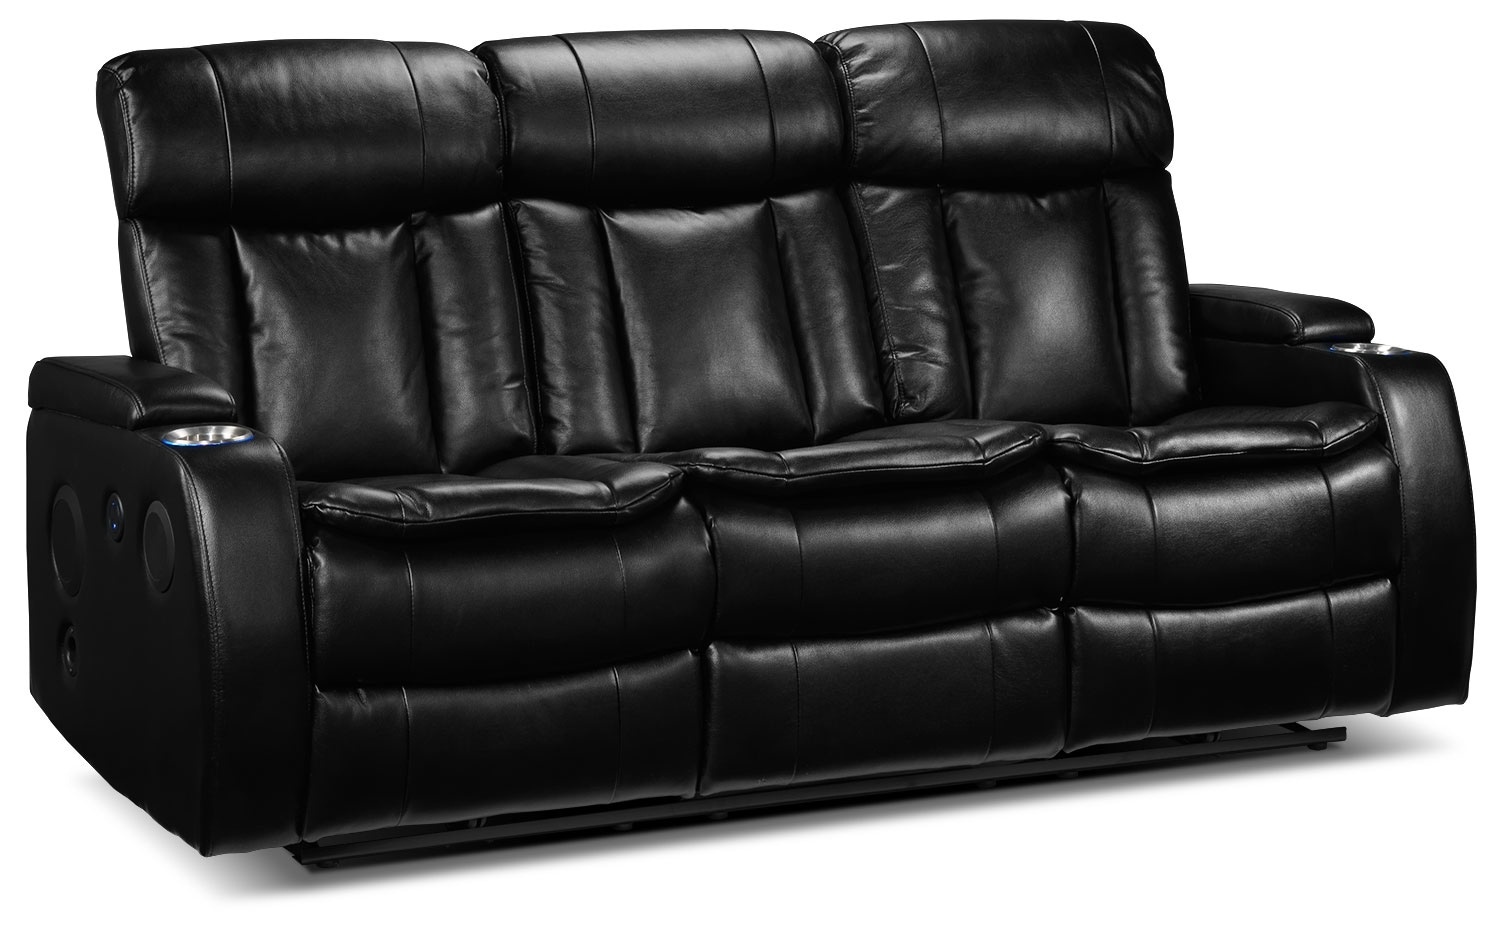 Living Room Furniture - Executive Power Reclining Sofa - Black